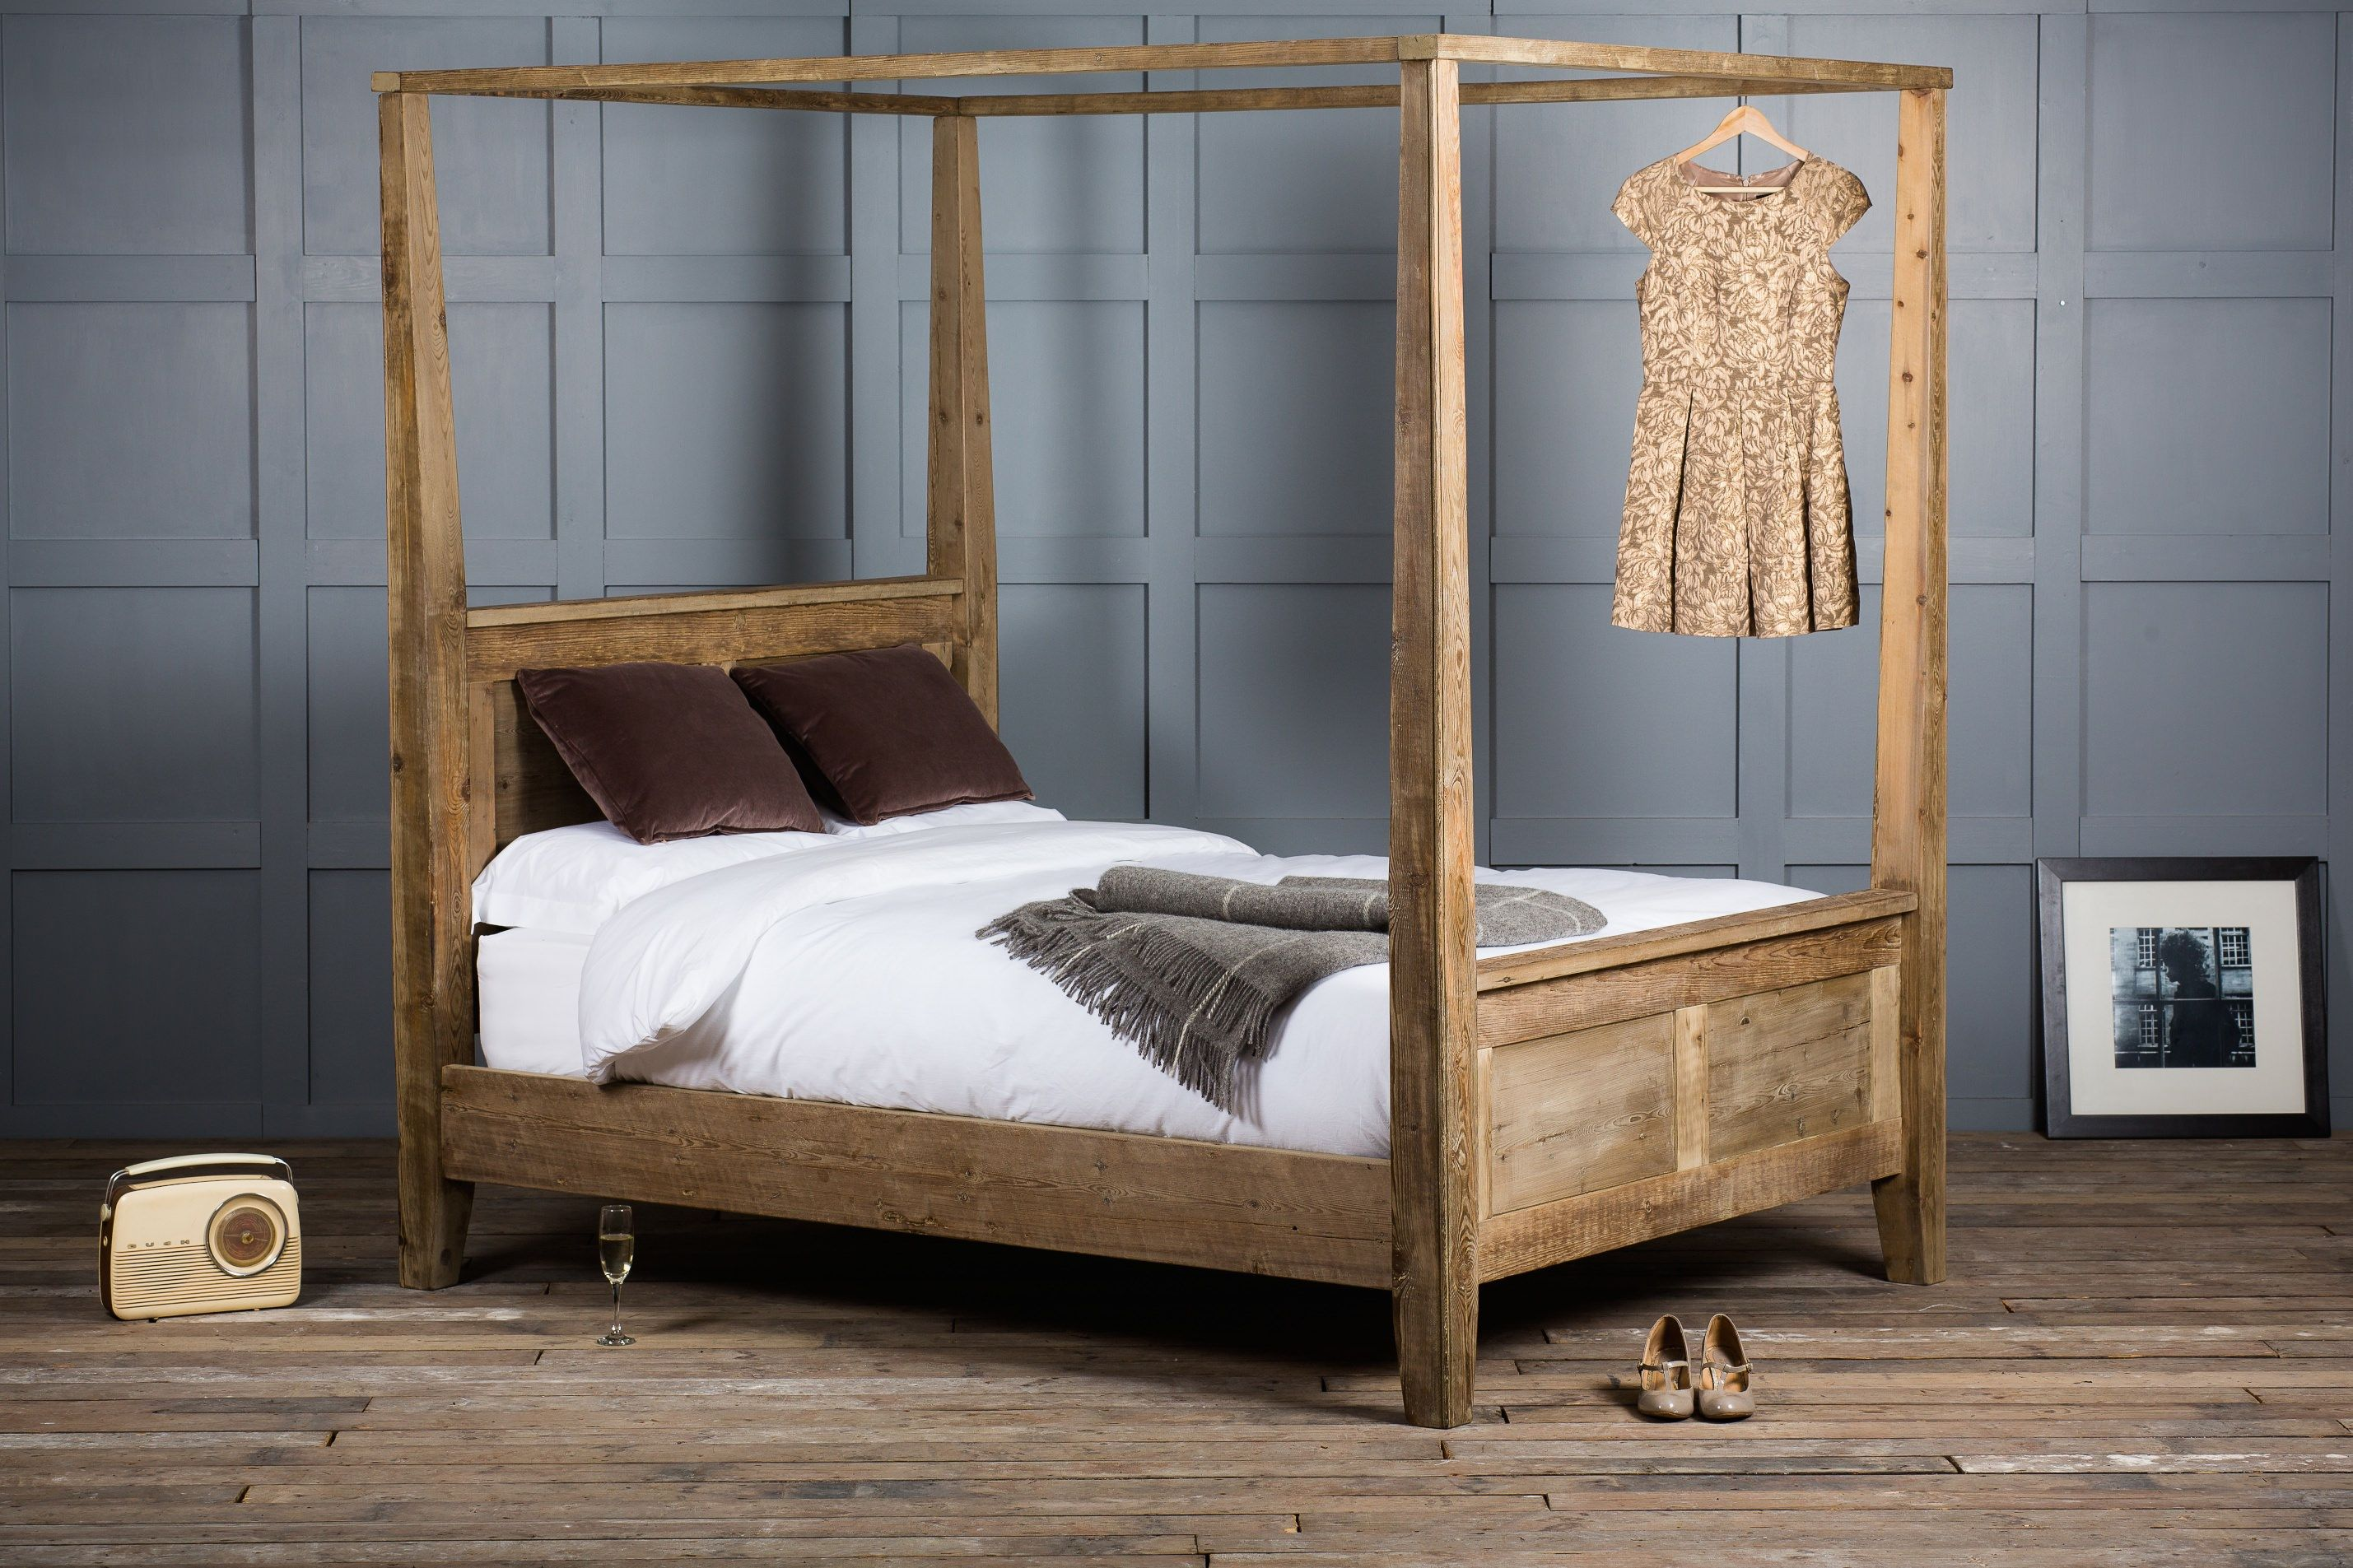 Reclaimed Wood Canopy Bed Casa Pinterest Canopy Beds